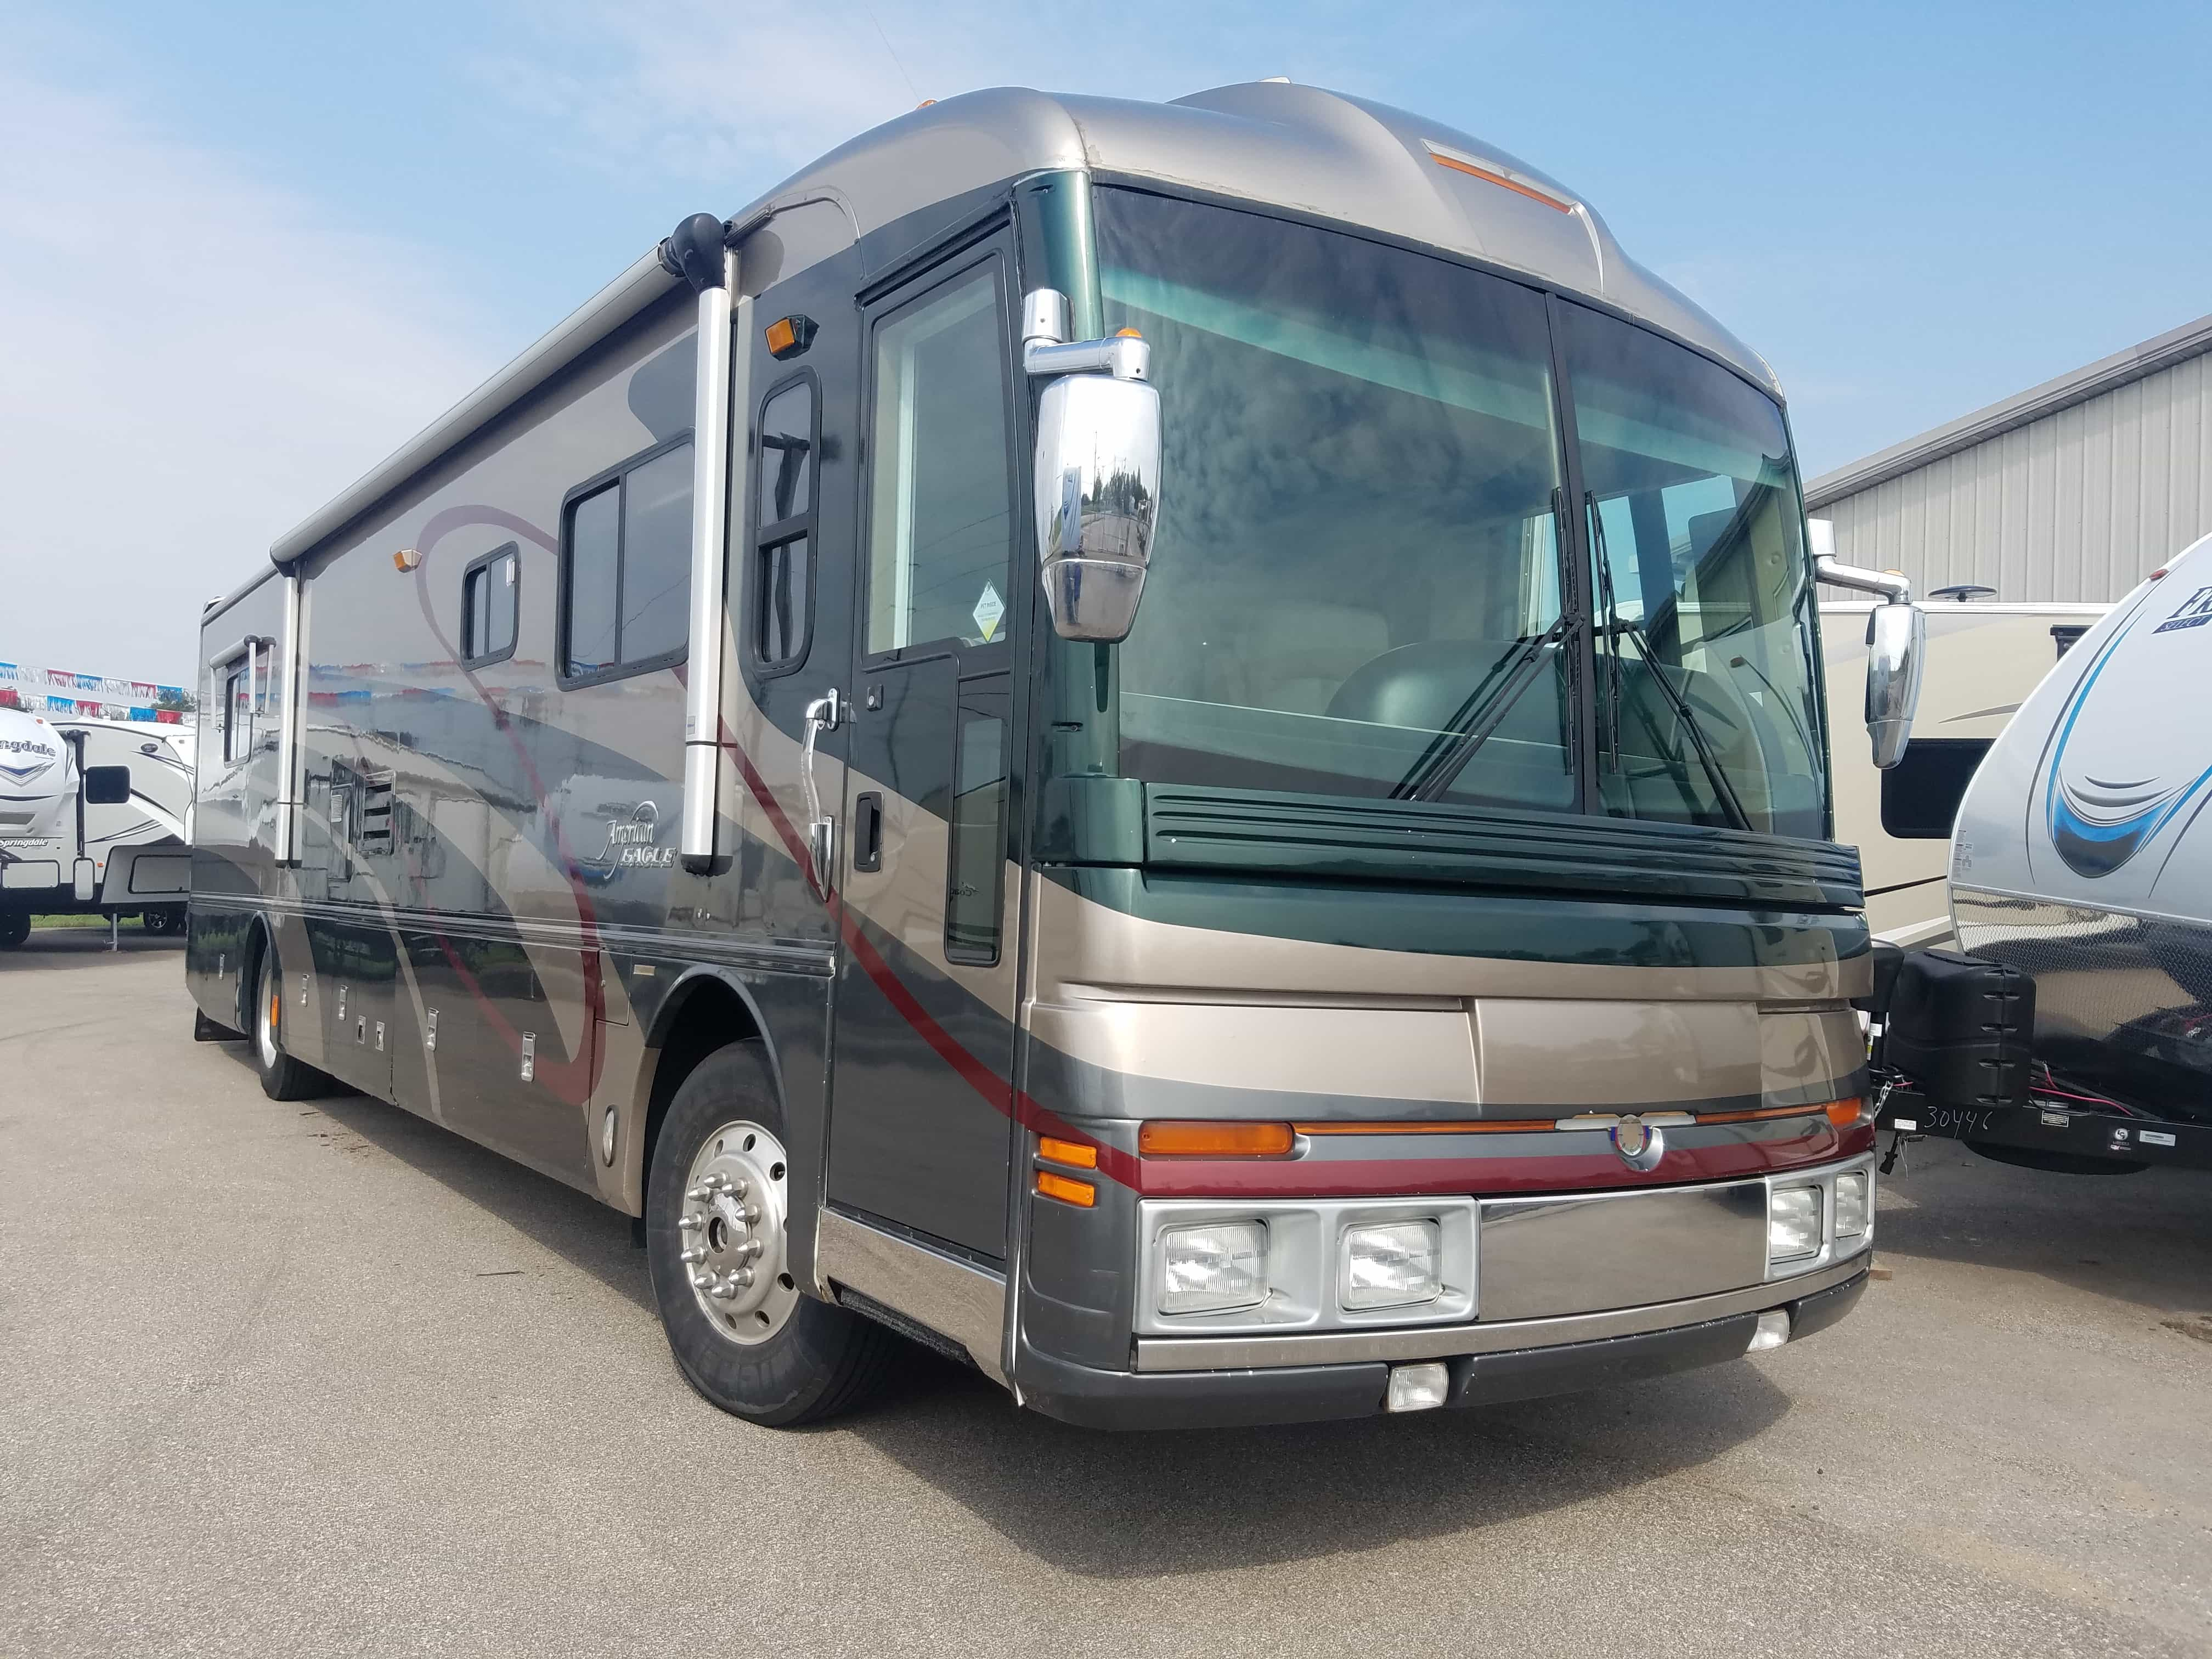 USED 2002 Fleetwood AMERICAN EAGLE 40EMS - American RV